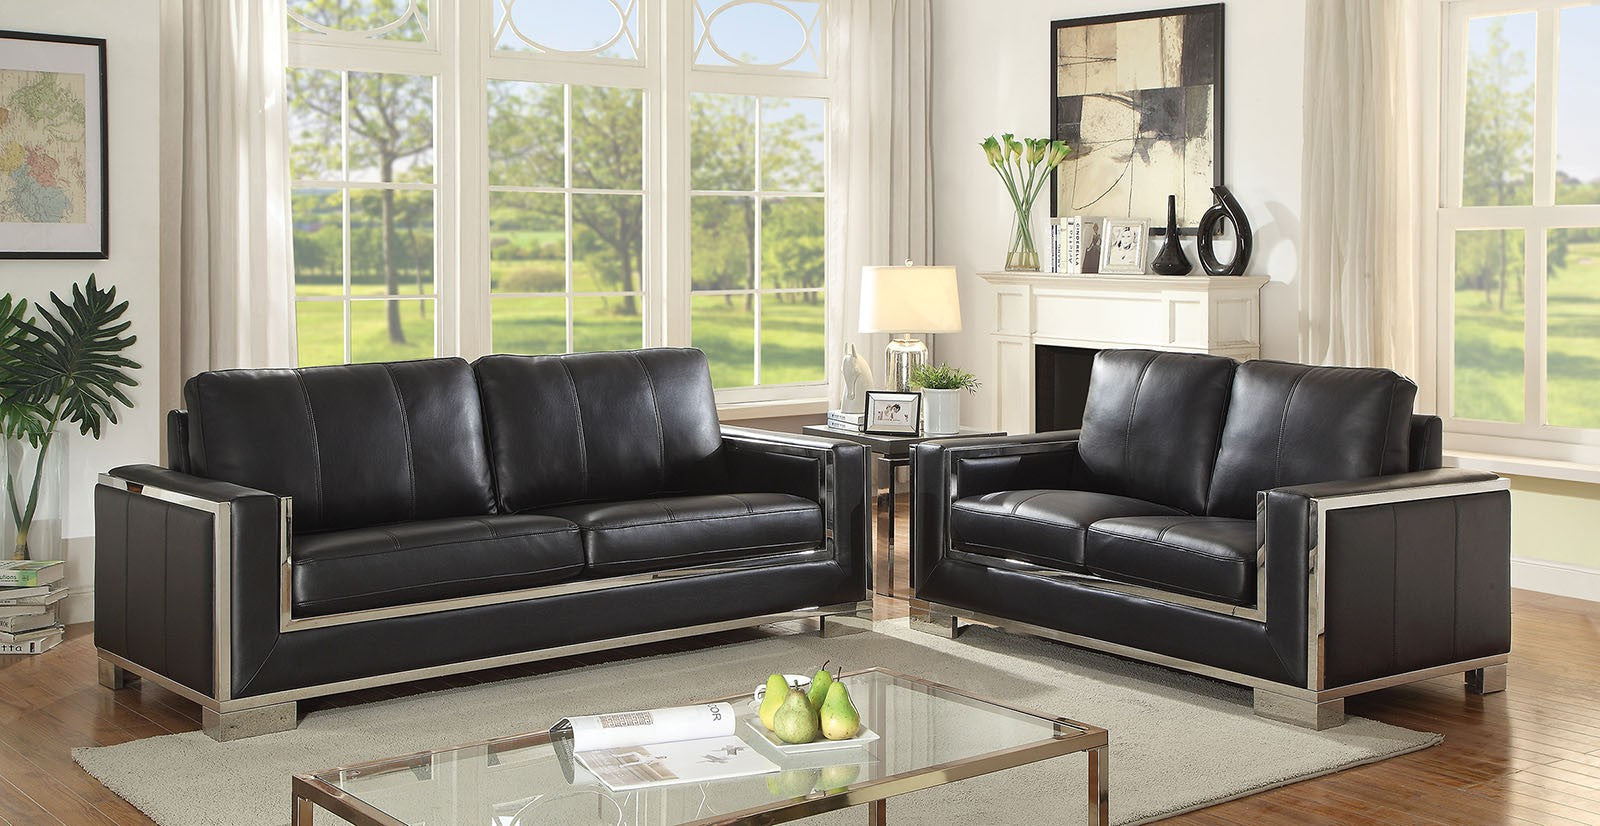 Monika Leather Gel Black/Chrome Contemporary Sofa